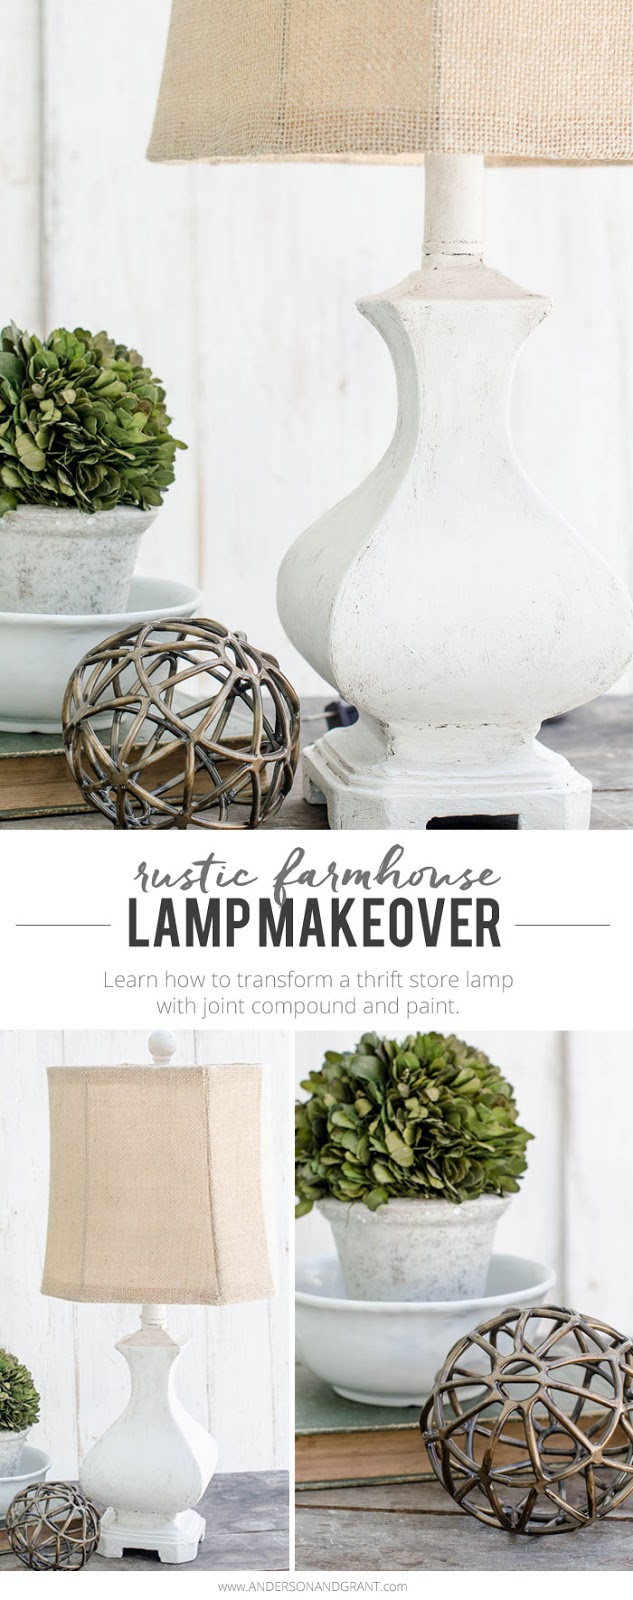 Do you have an unstylish lamp that you haven't been able to get rid of?  Learn how to use joint compound from the hardware store to give it texture and a rustic farmhouse look.  |  www.andersonandgrant.com